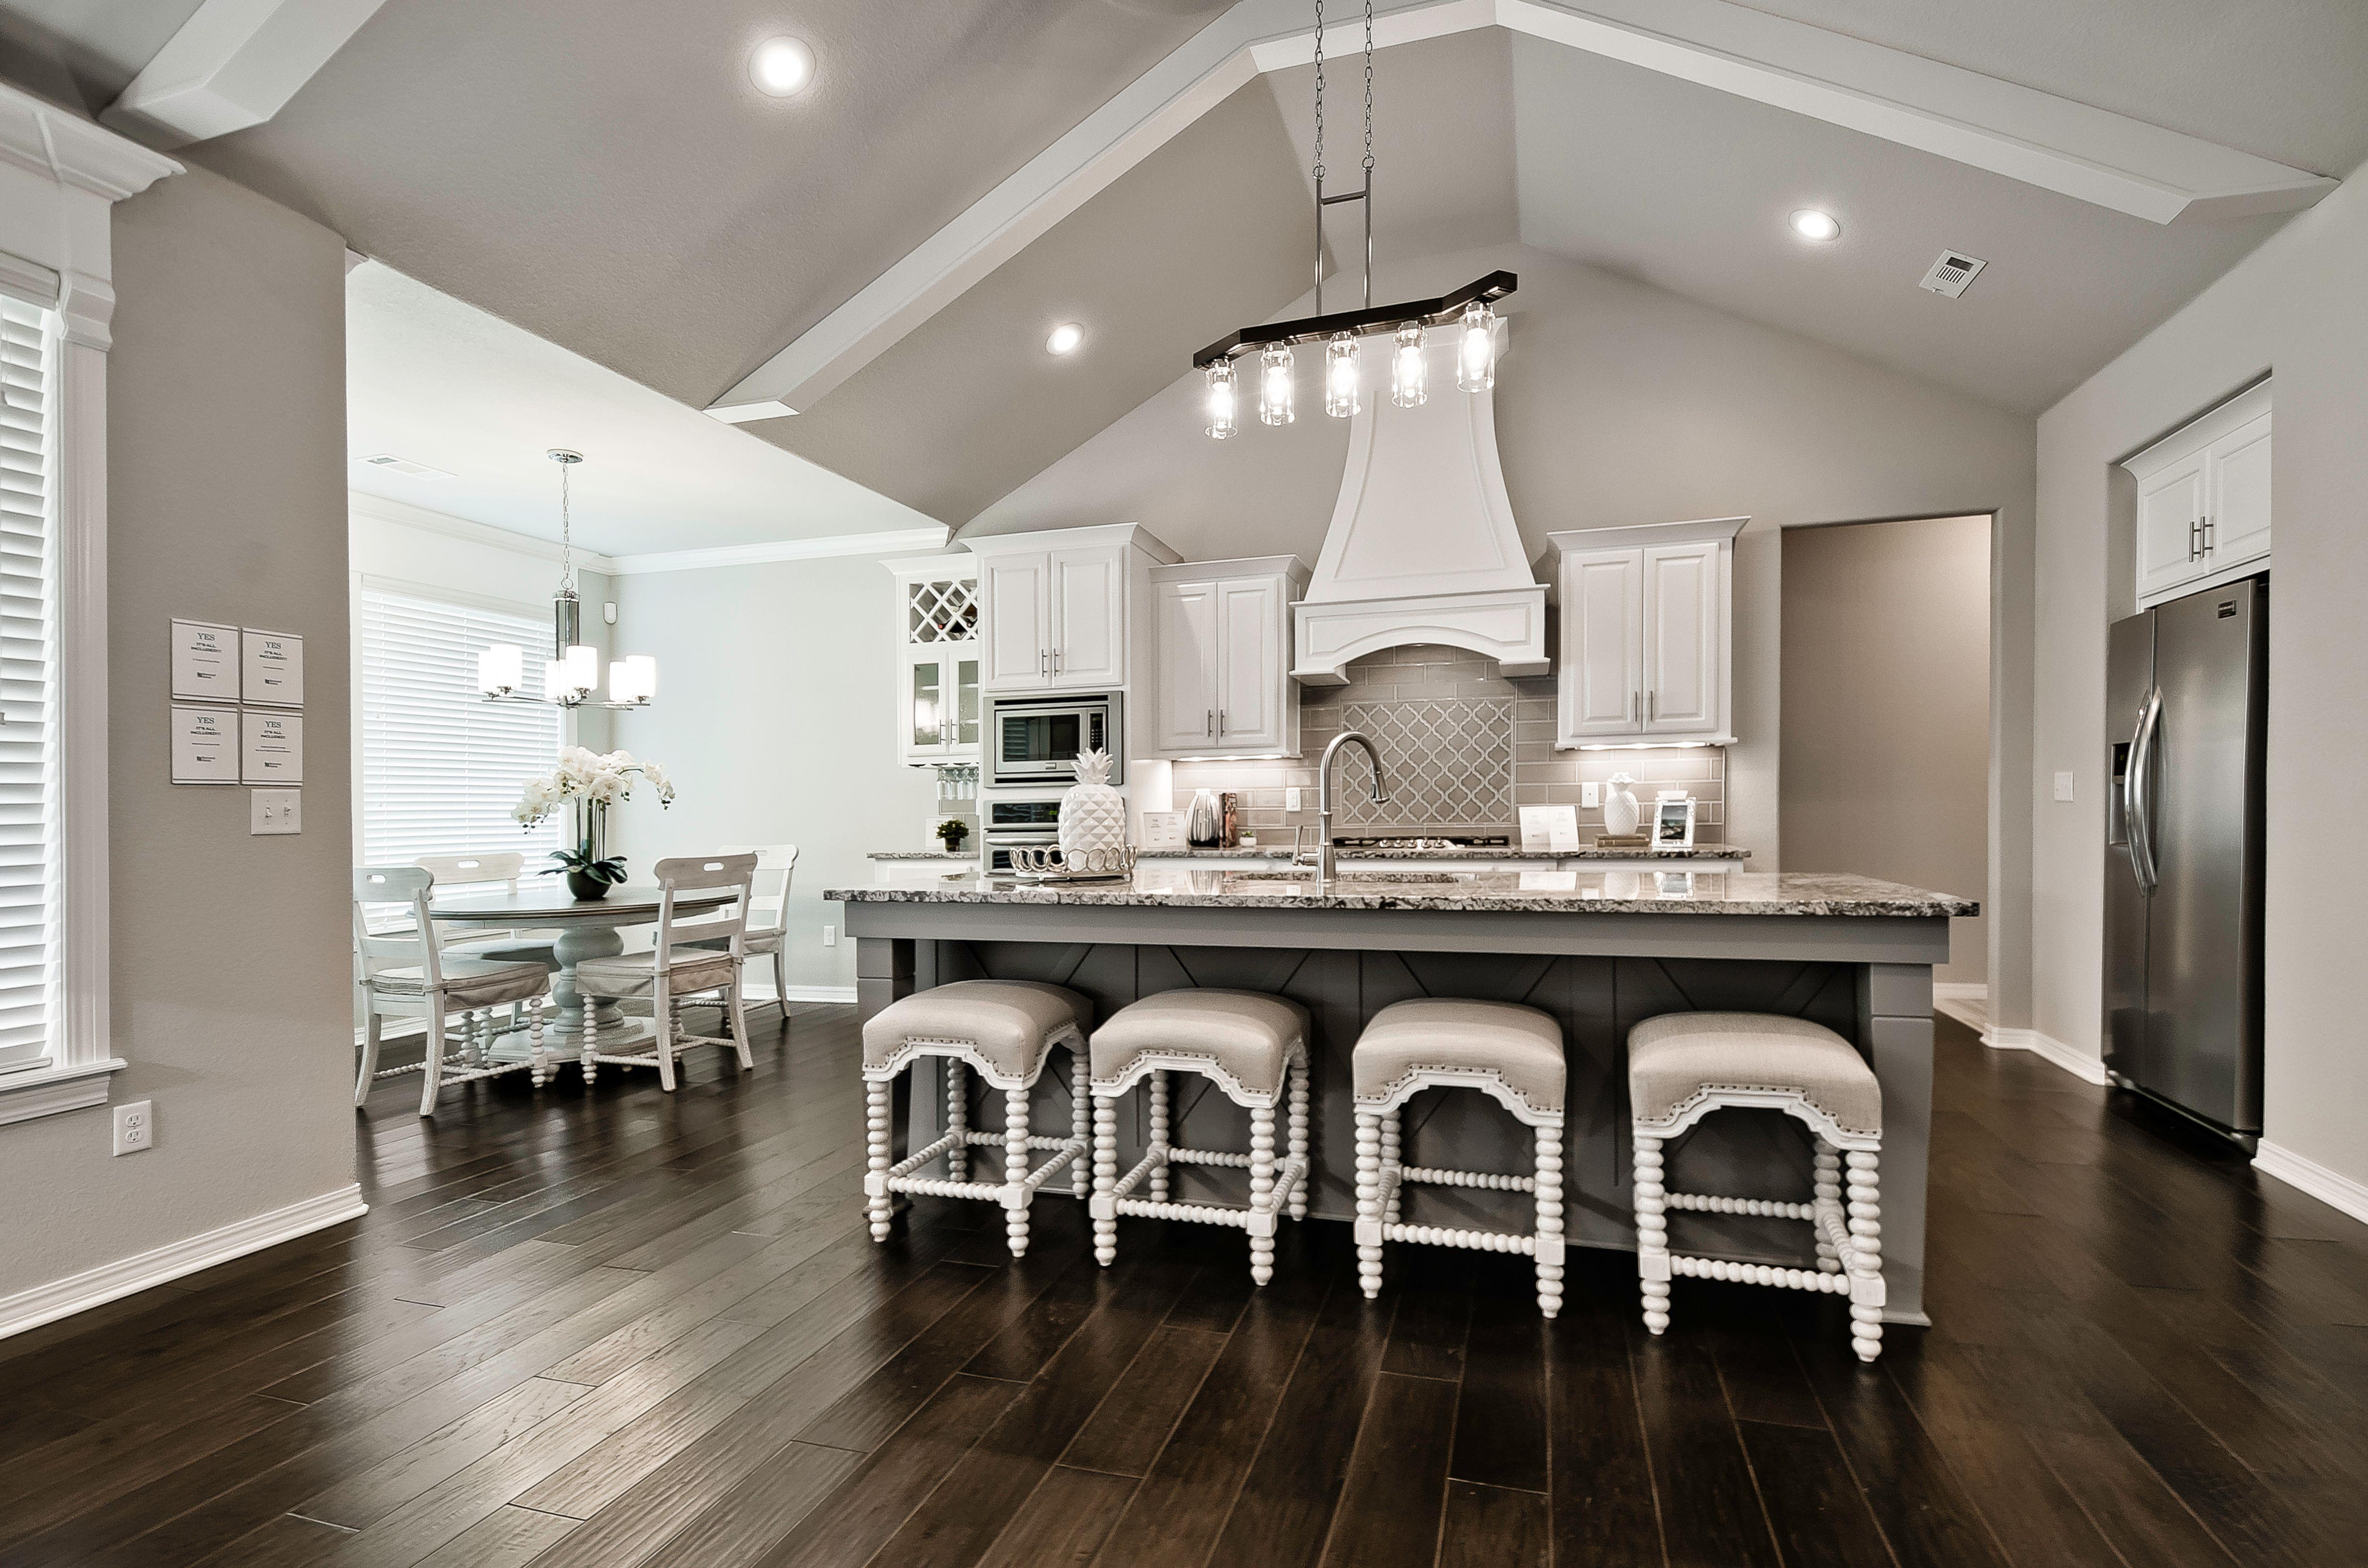 Kitchen featured in the Quartz 2475 By Riverwood Homes - Arkansas in Fayetteville, AR